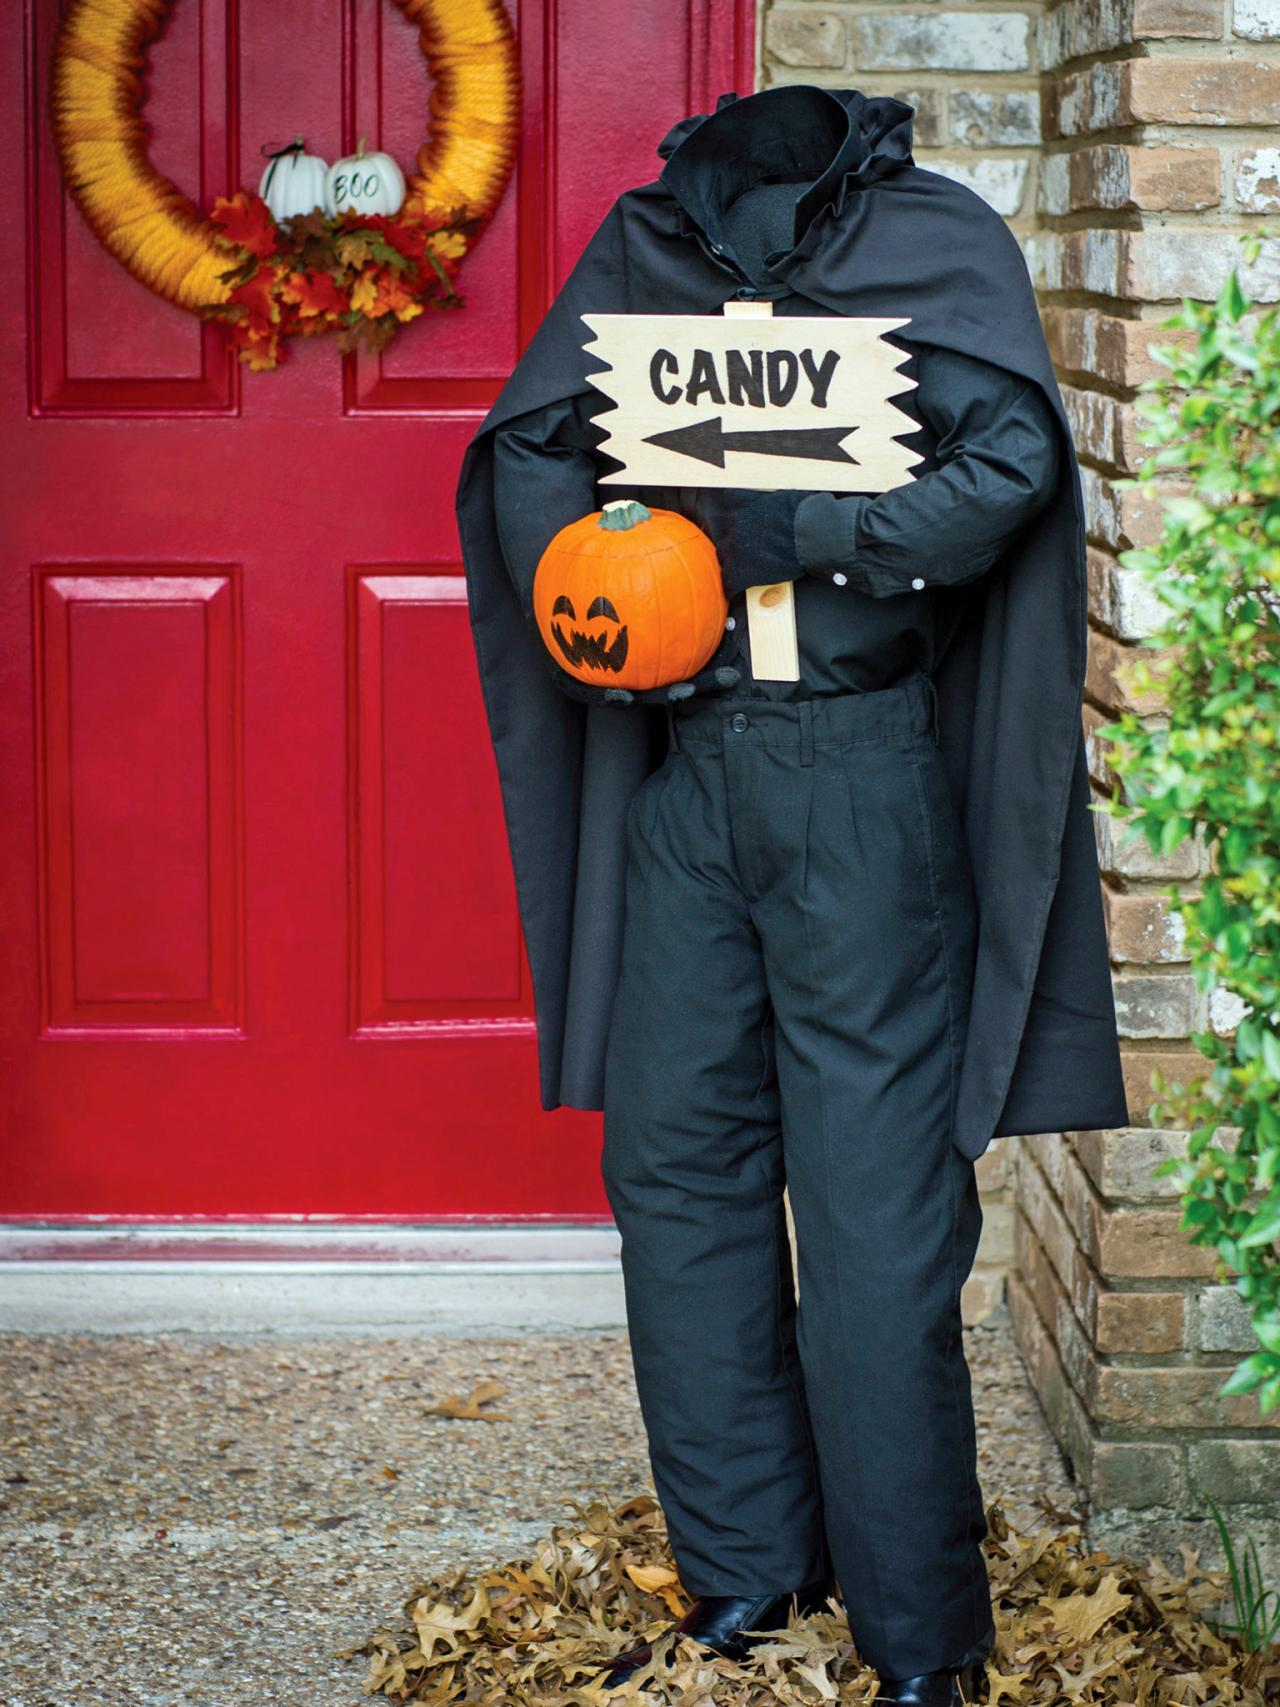 original_Sam-Henderson-handmade-Halloween-outdoor-decor-headless-horseman-beauty3.jpg.rend.hgtvcom.1280.1707